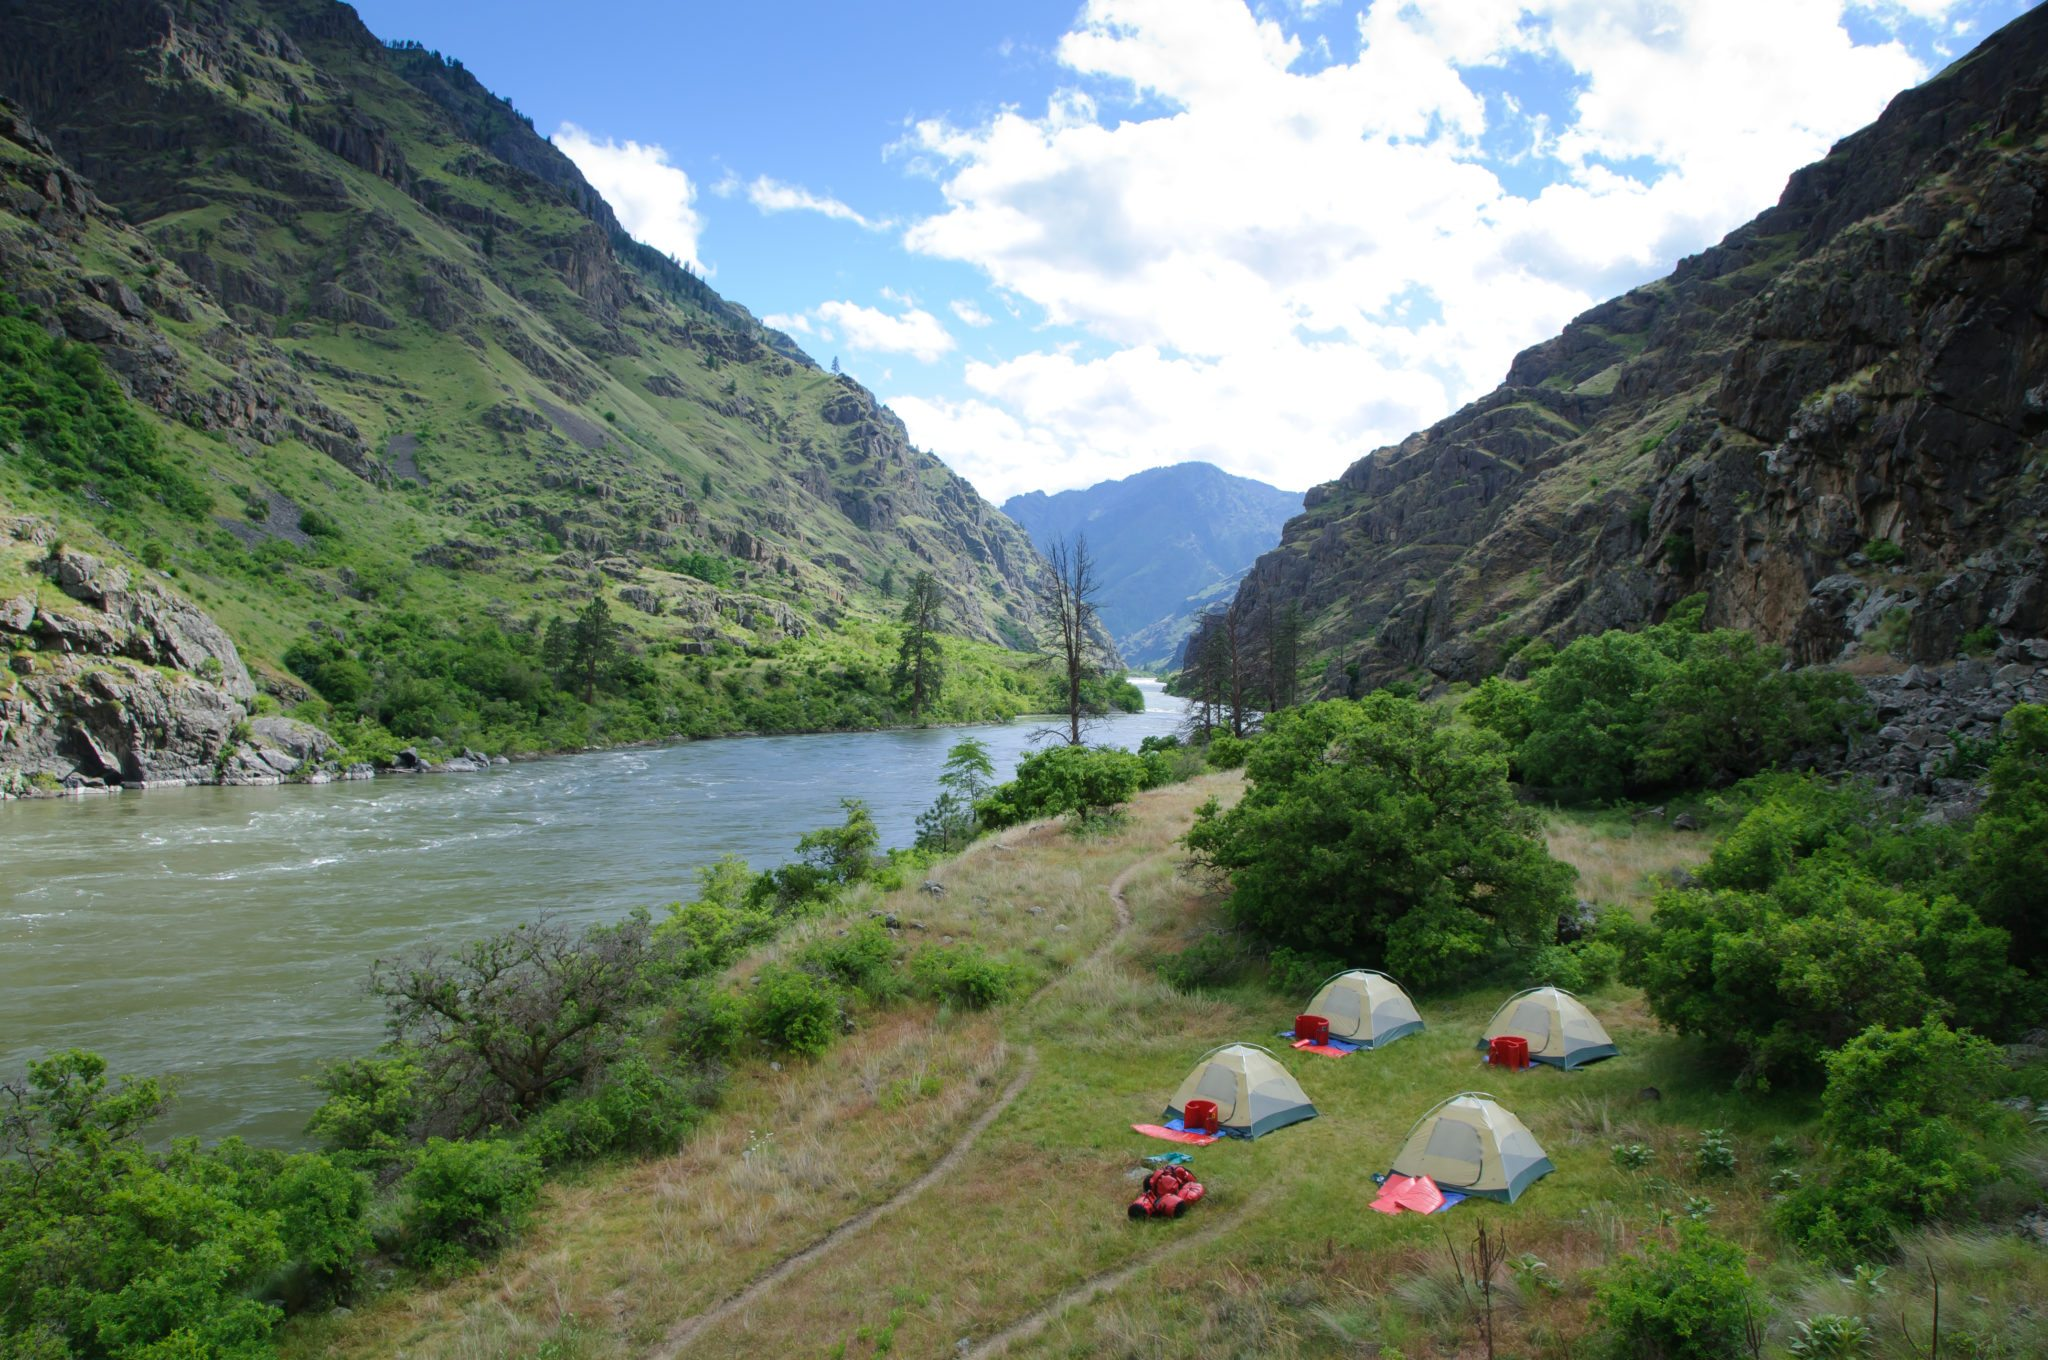 When is the best time to visit Hells Canyon?